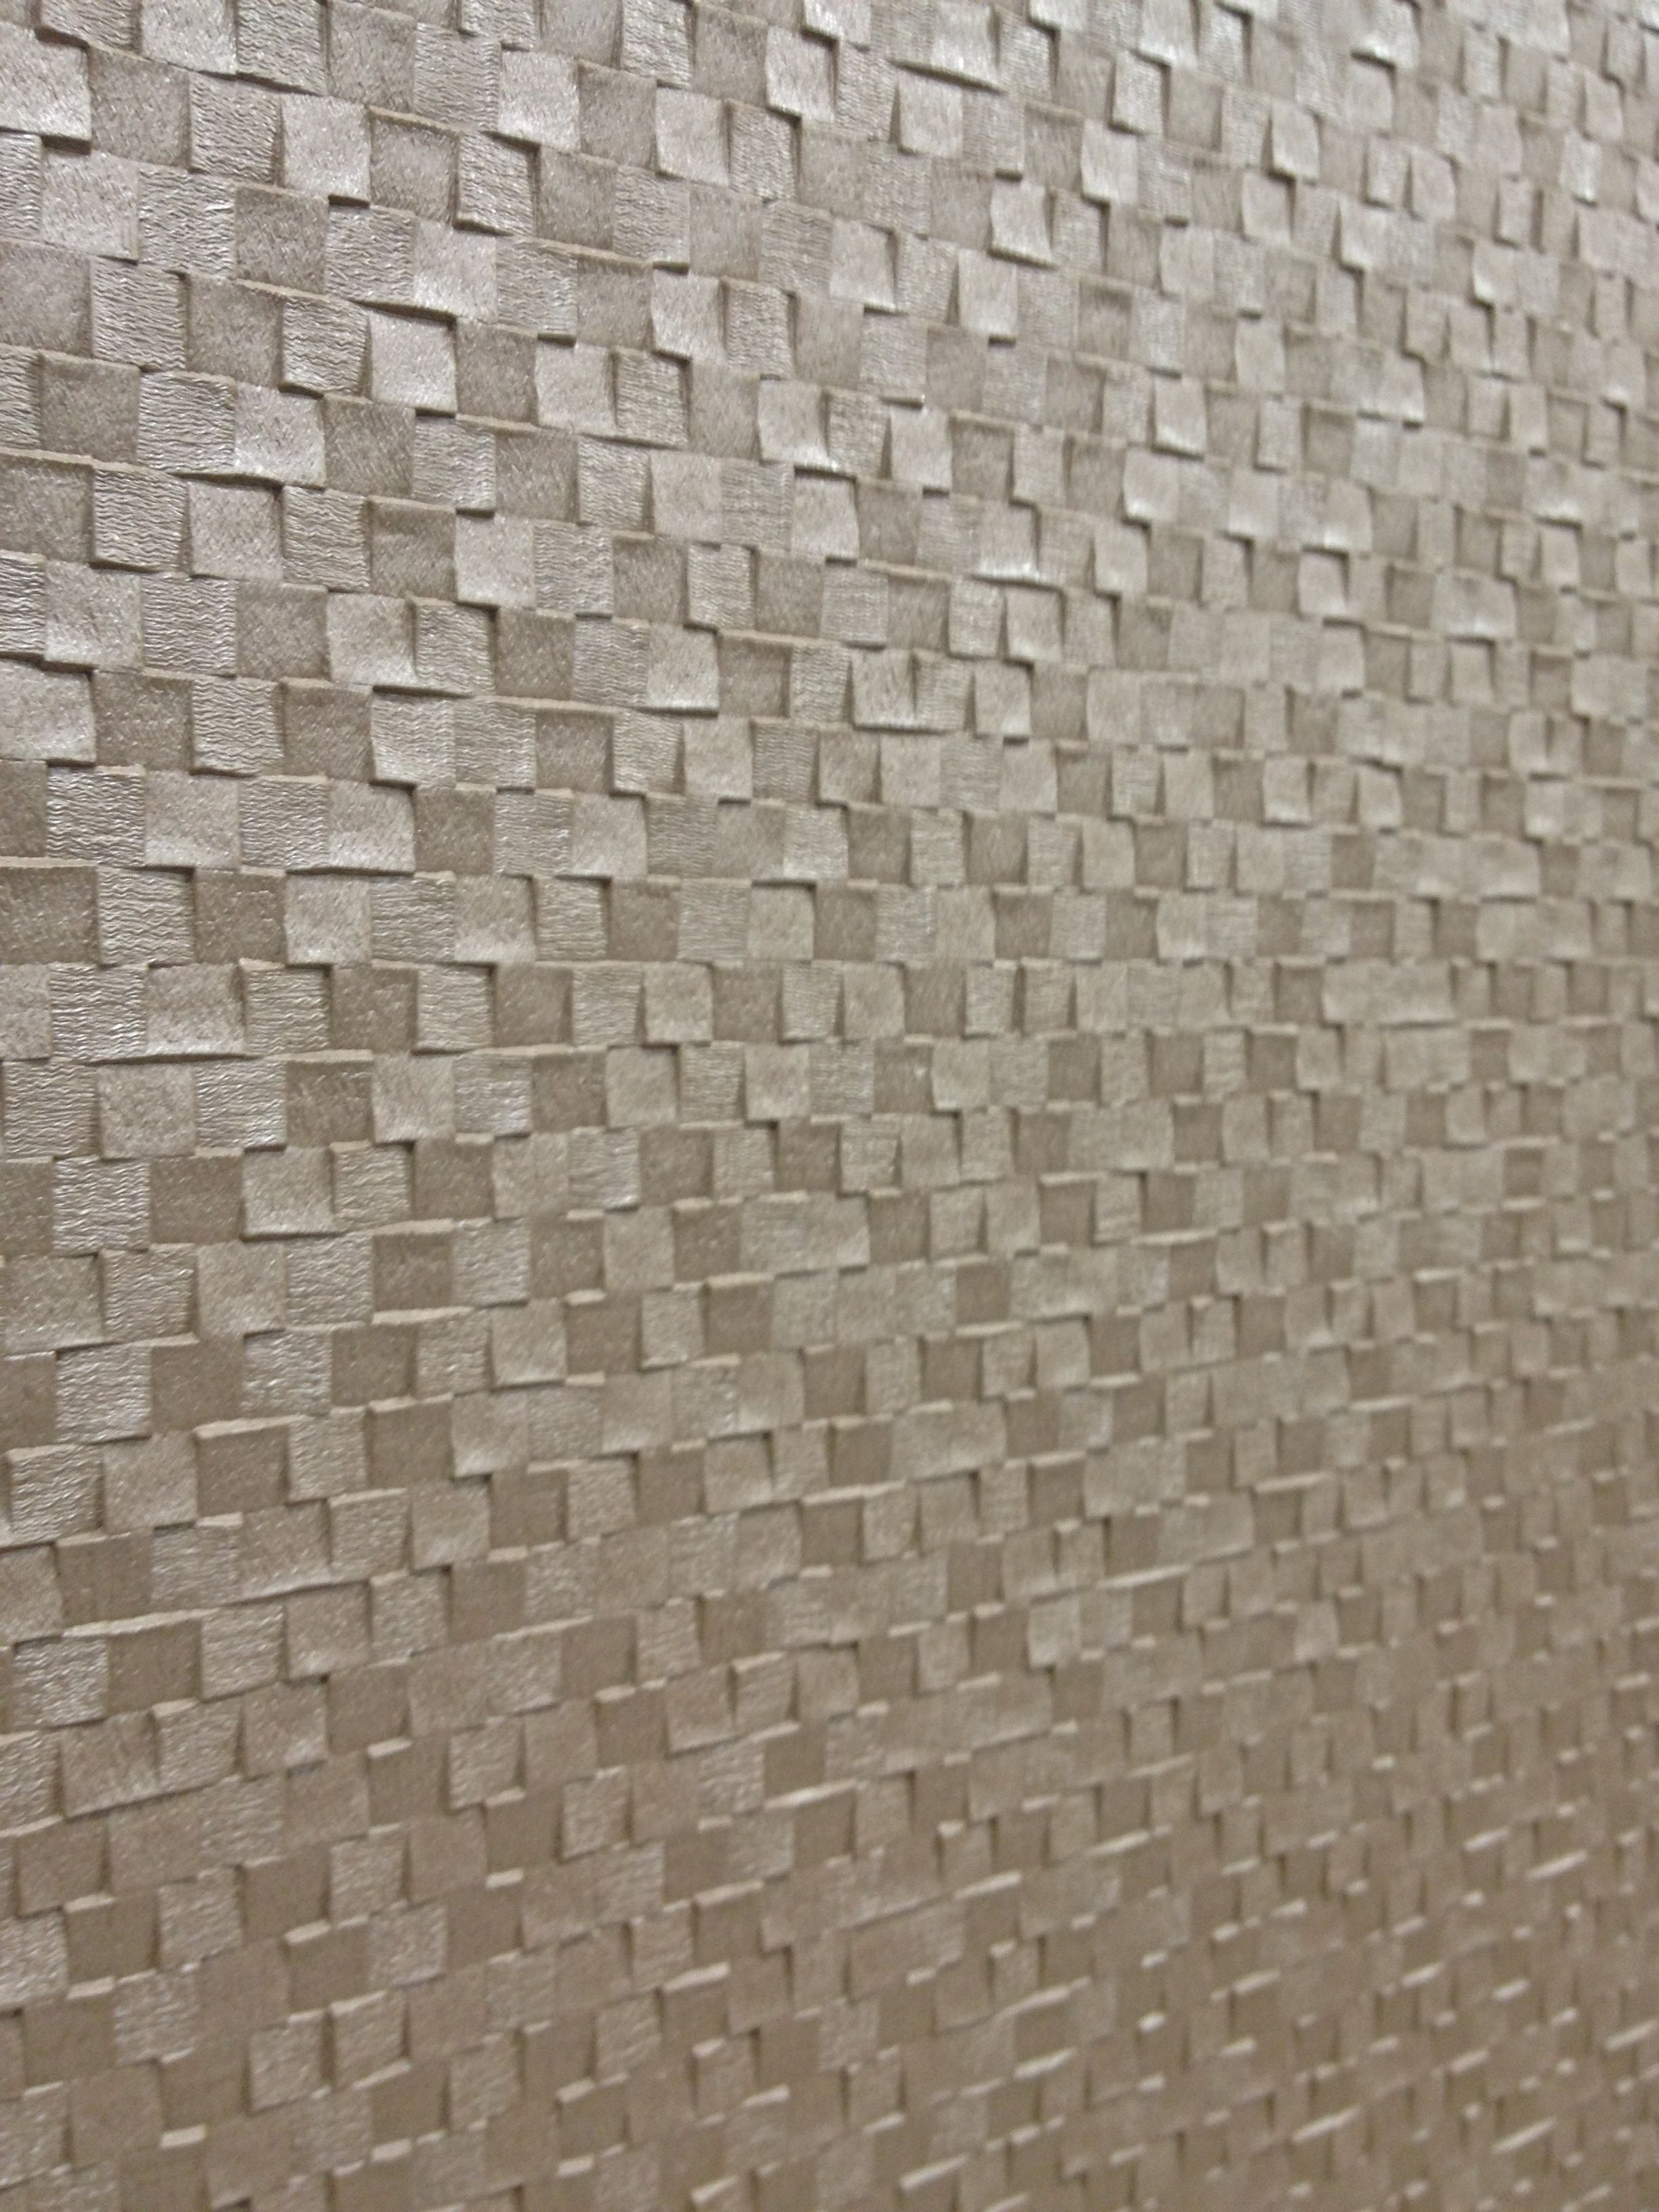 Textured wallpaper I don't like wallpaper but I saw this